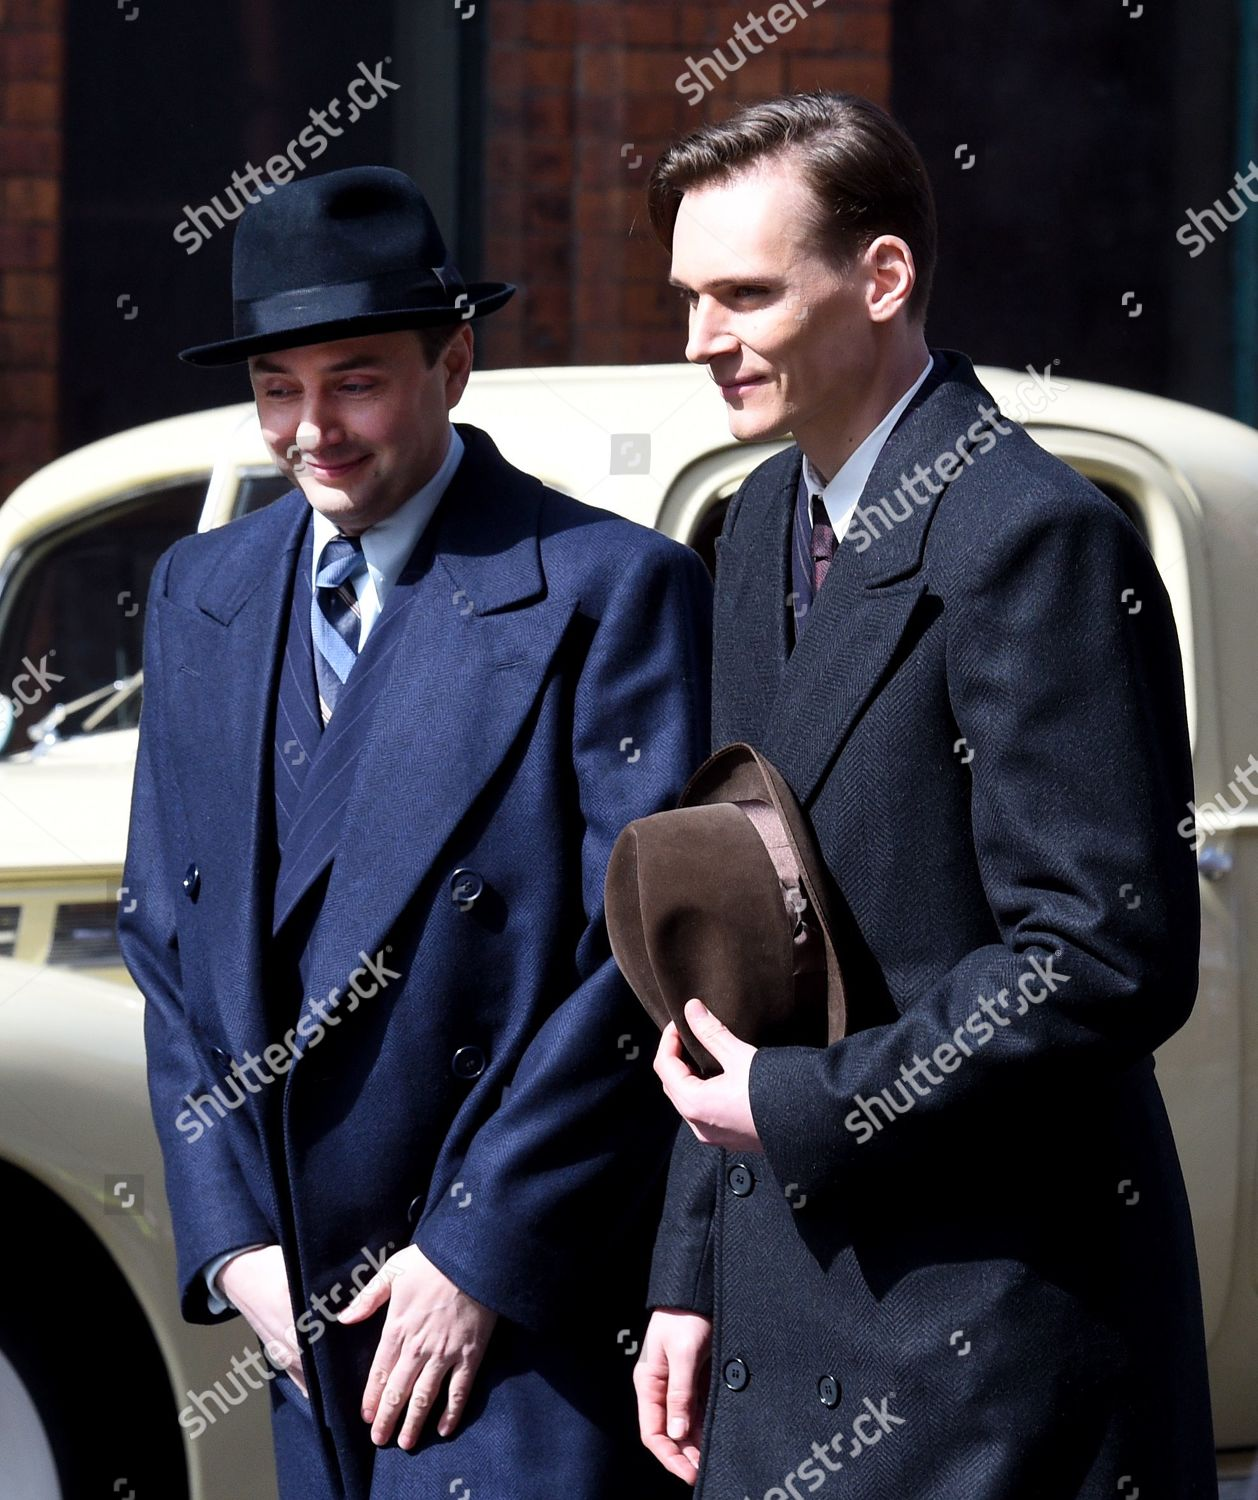 Actors on streets Manchester turned into 1940s Editorial Stock Photo